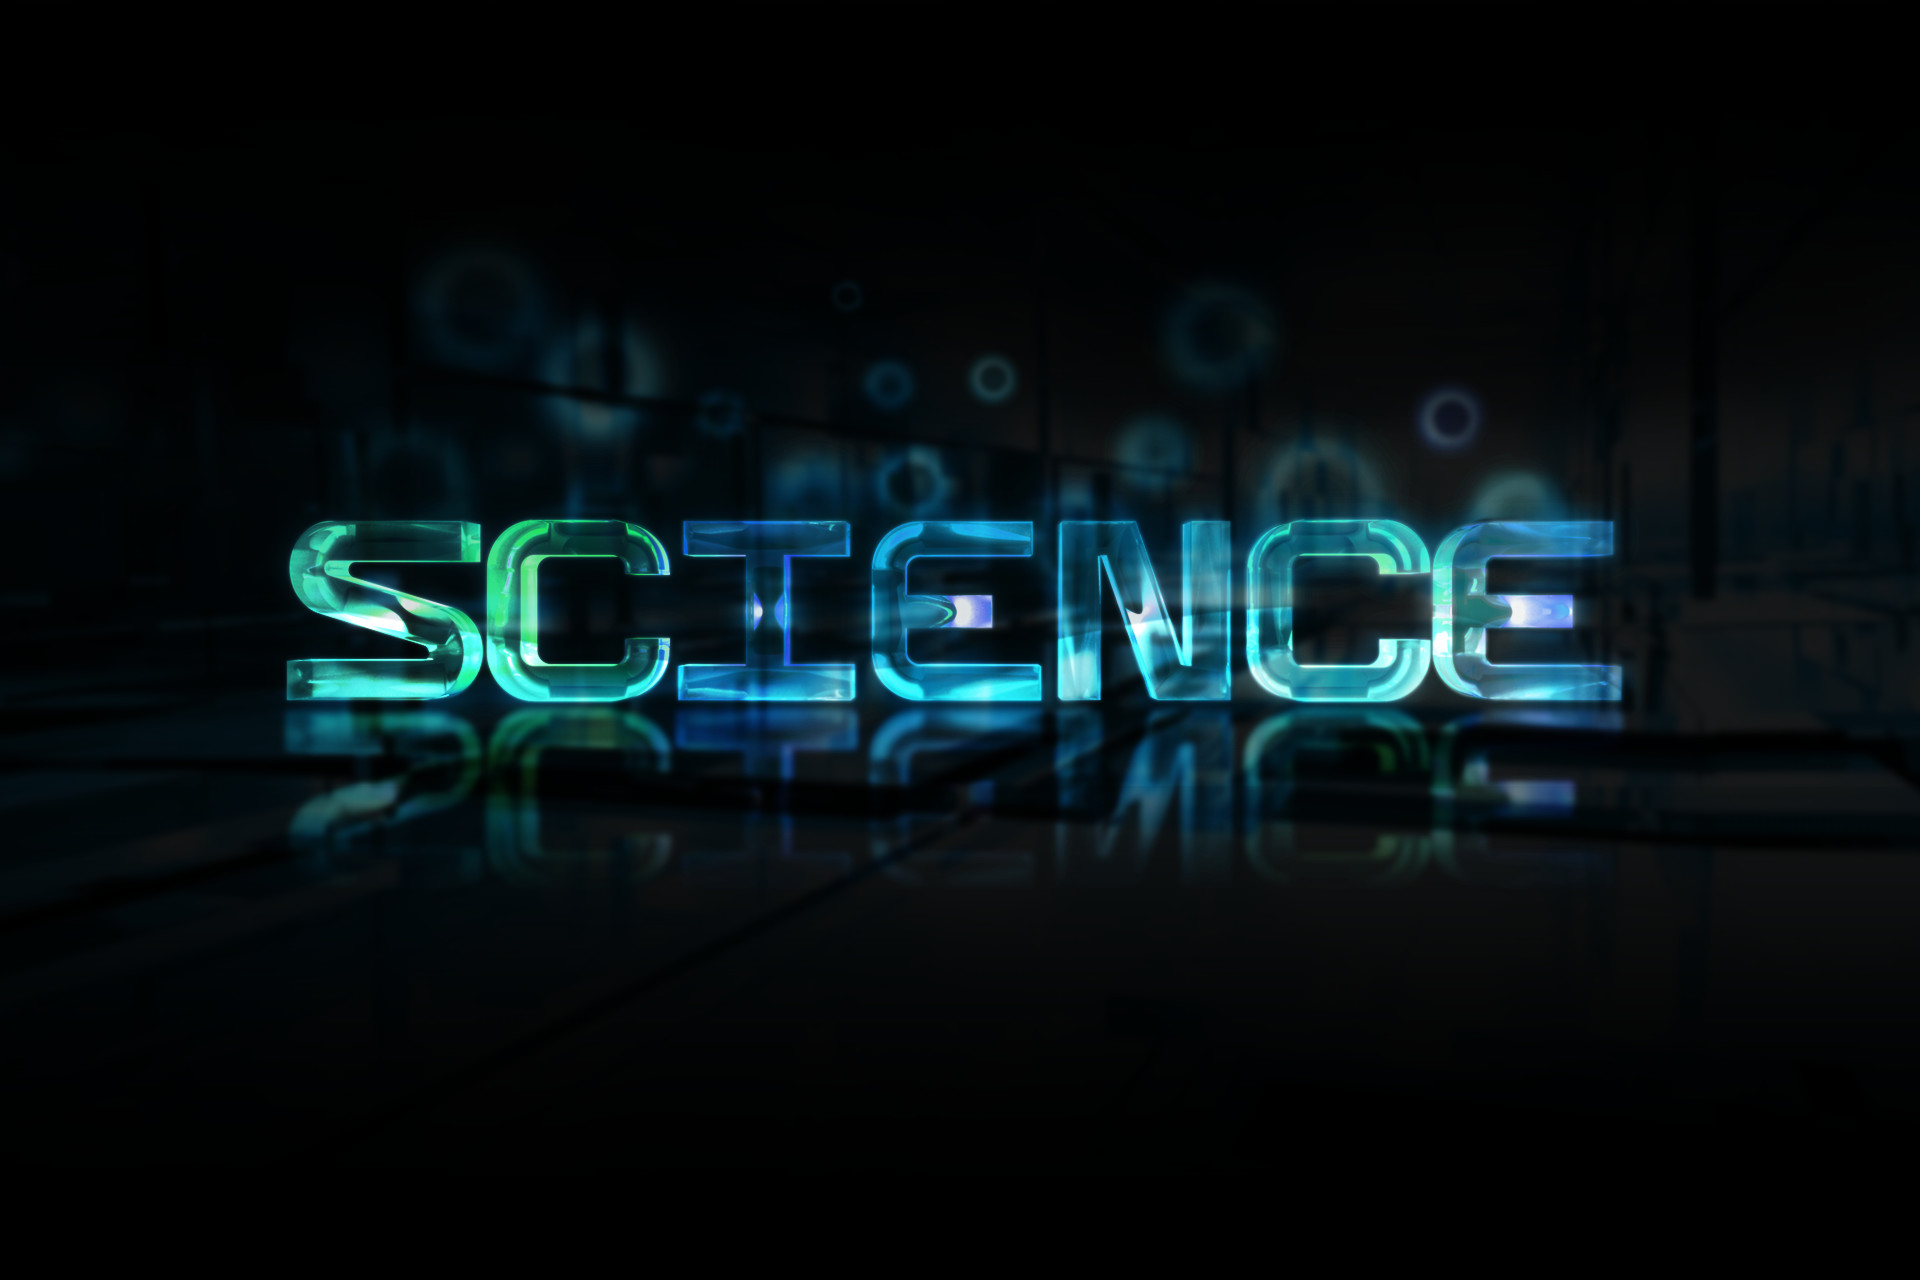 science cool backgrounds money quick easy wallpapertag most related